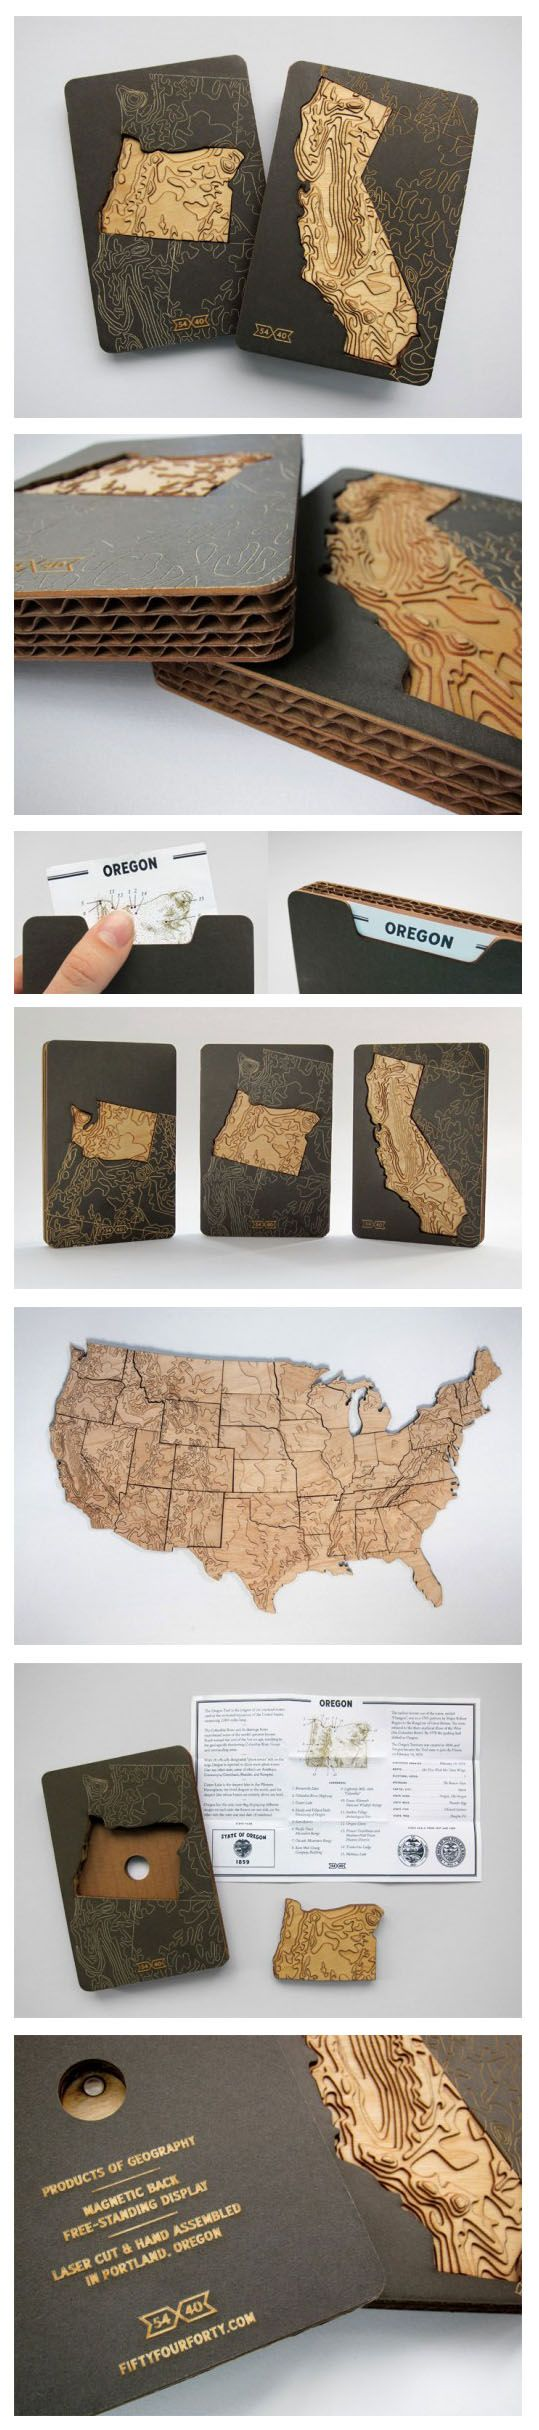 I know you will love this too Diana Zyliene  Puzzle made out of #corrugated. Excellent innovative use of #packaging #material PD.